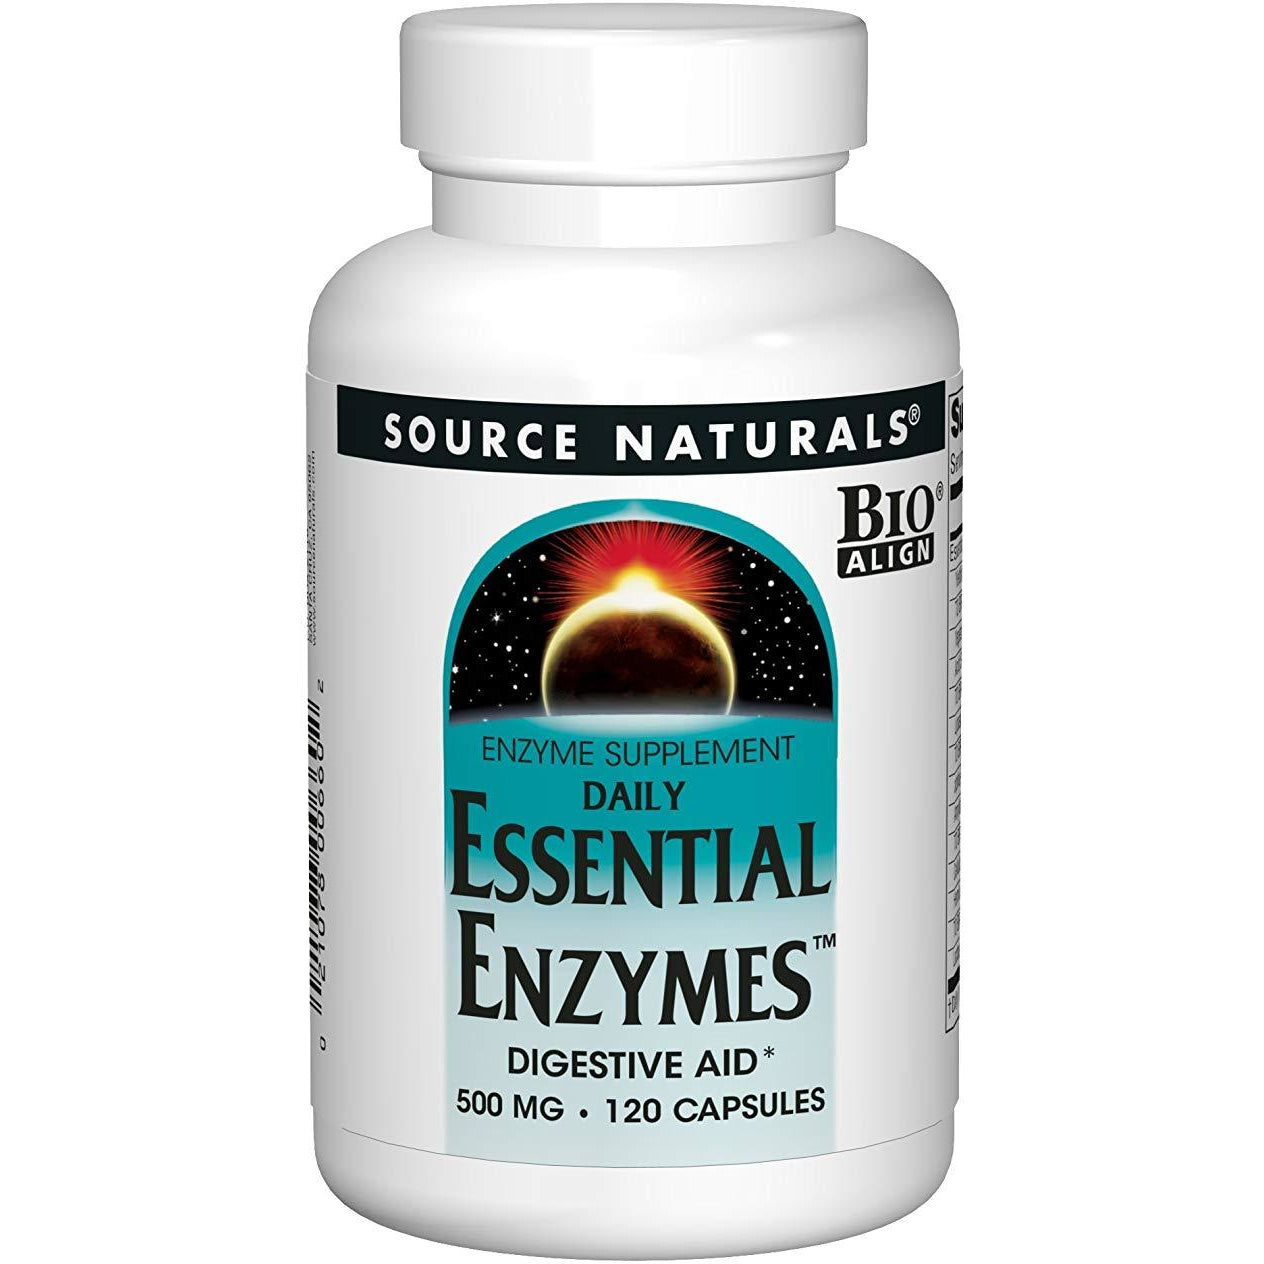 Daily Essential Enzymes (Bio-Aligned) – Mission Nutrition